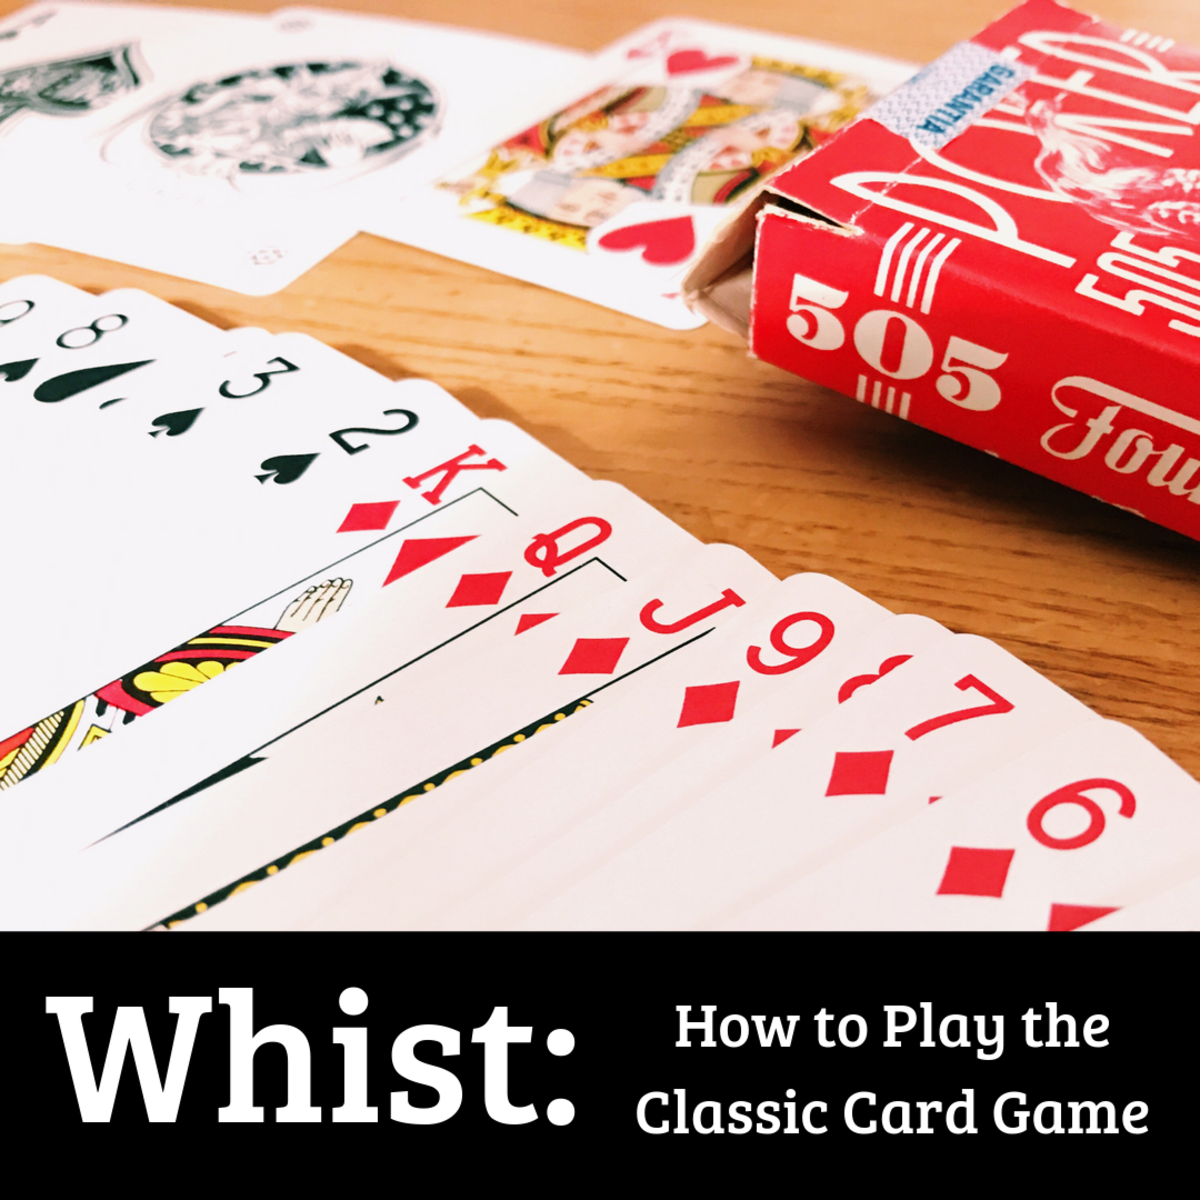 Learn how to play Whist, and get some strategy tips. See some variations to this fun, classic card game.